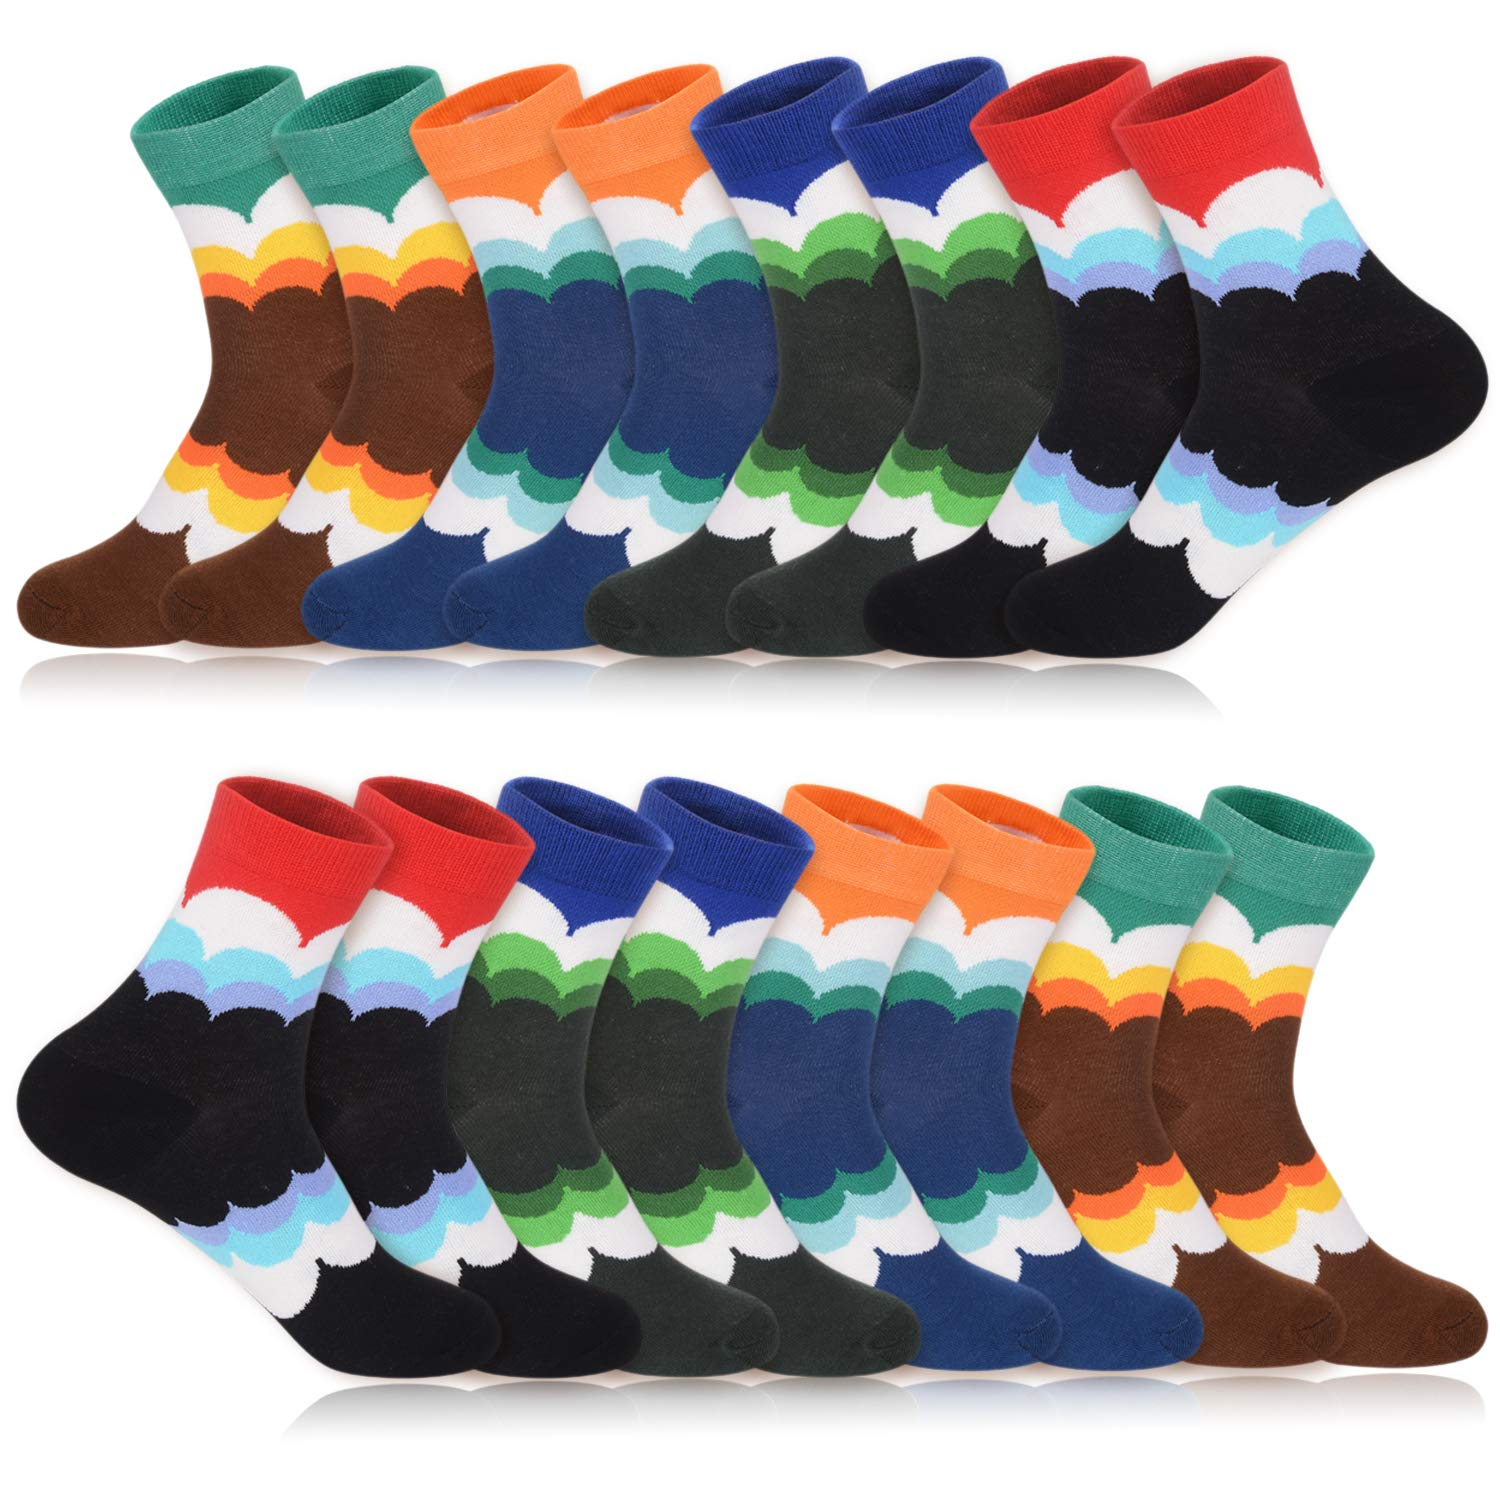 Willin colorful Combed Cotton Socks Pattern for Women and Girls (8 Pairs)